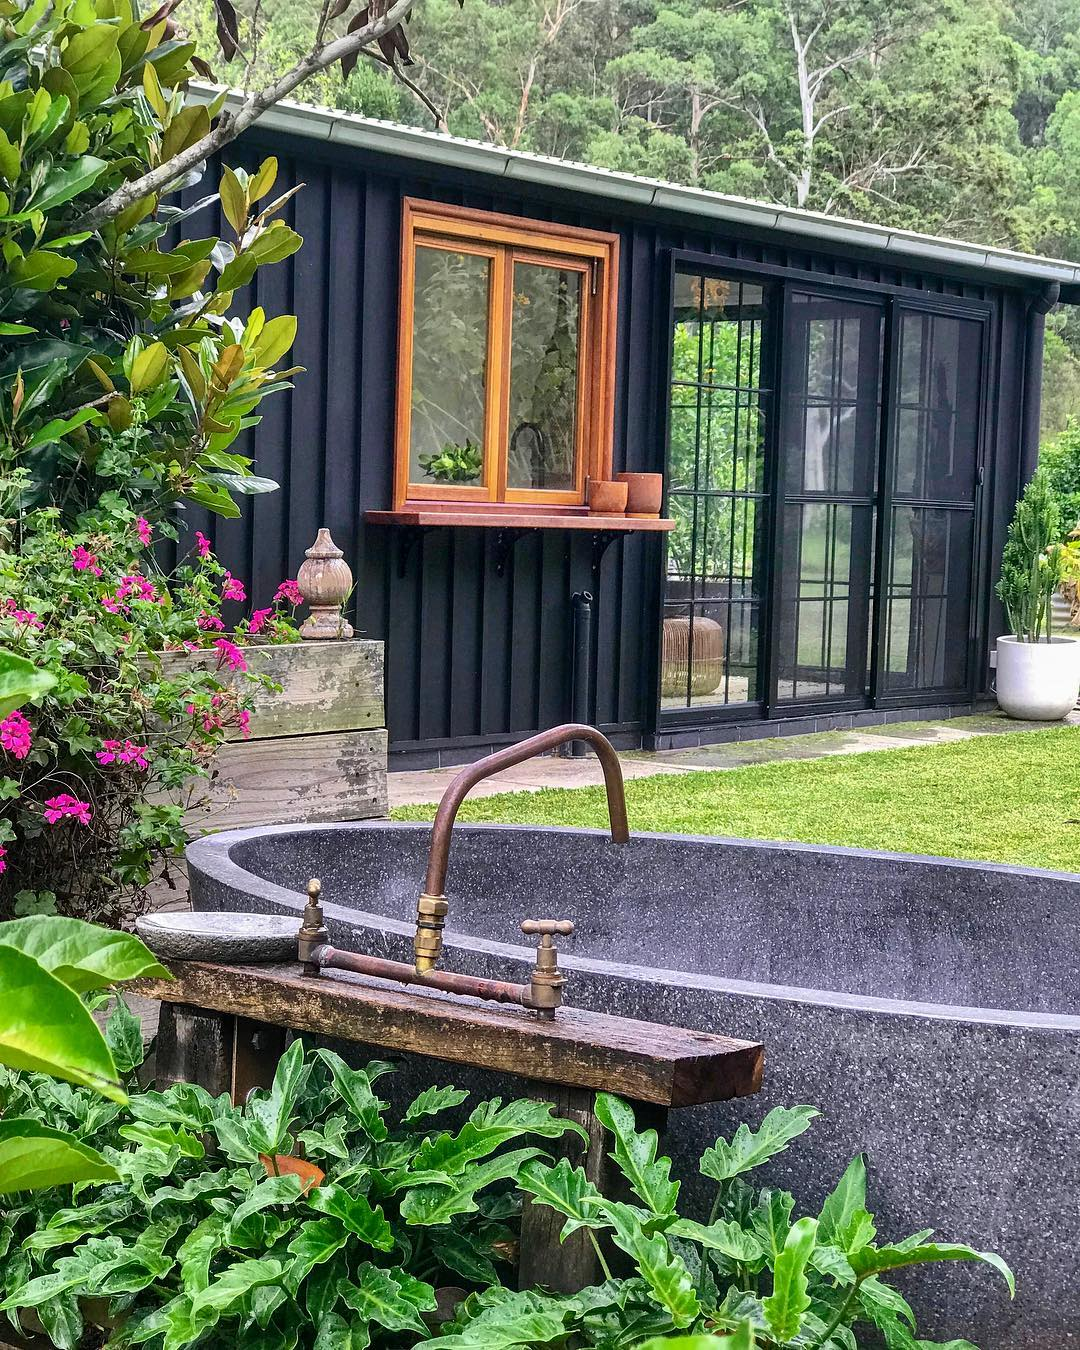 The Grower's Cottage | Bathtubs worth travelling for